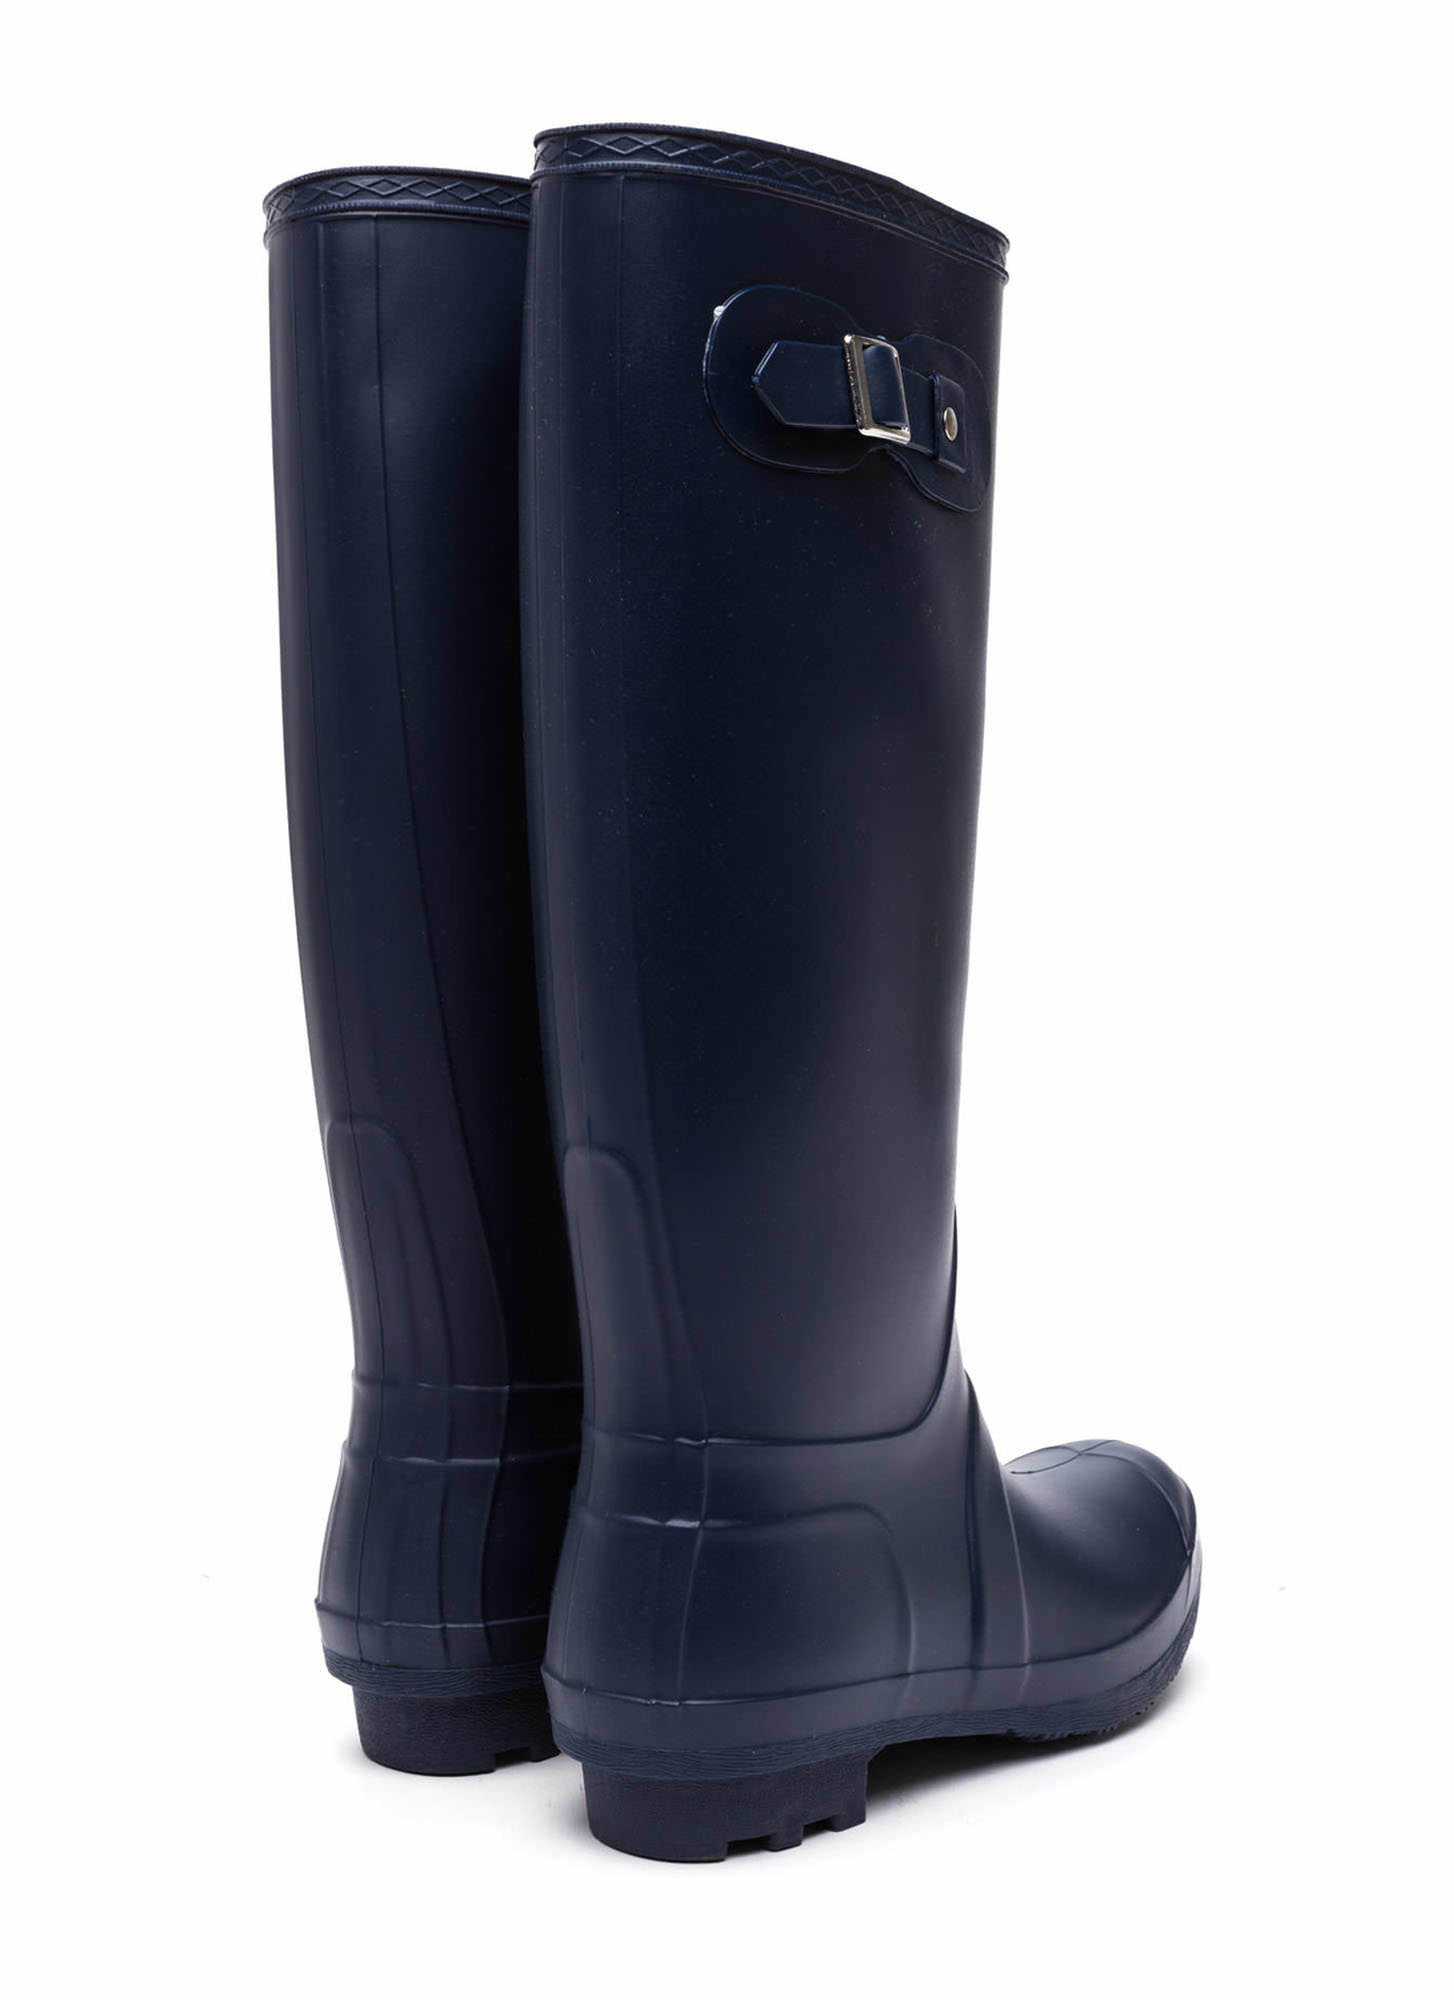 Storm Away Rain Boots GREY NAVY BLACK - GoJane.com